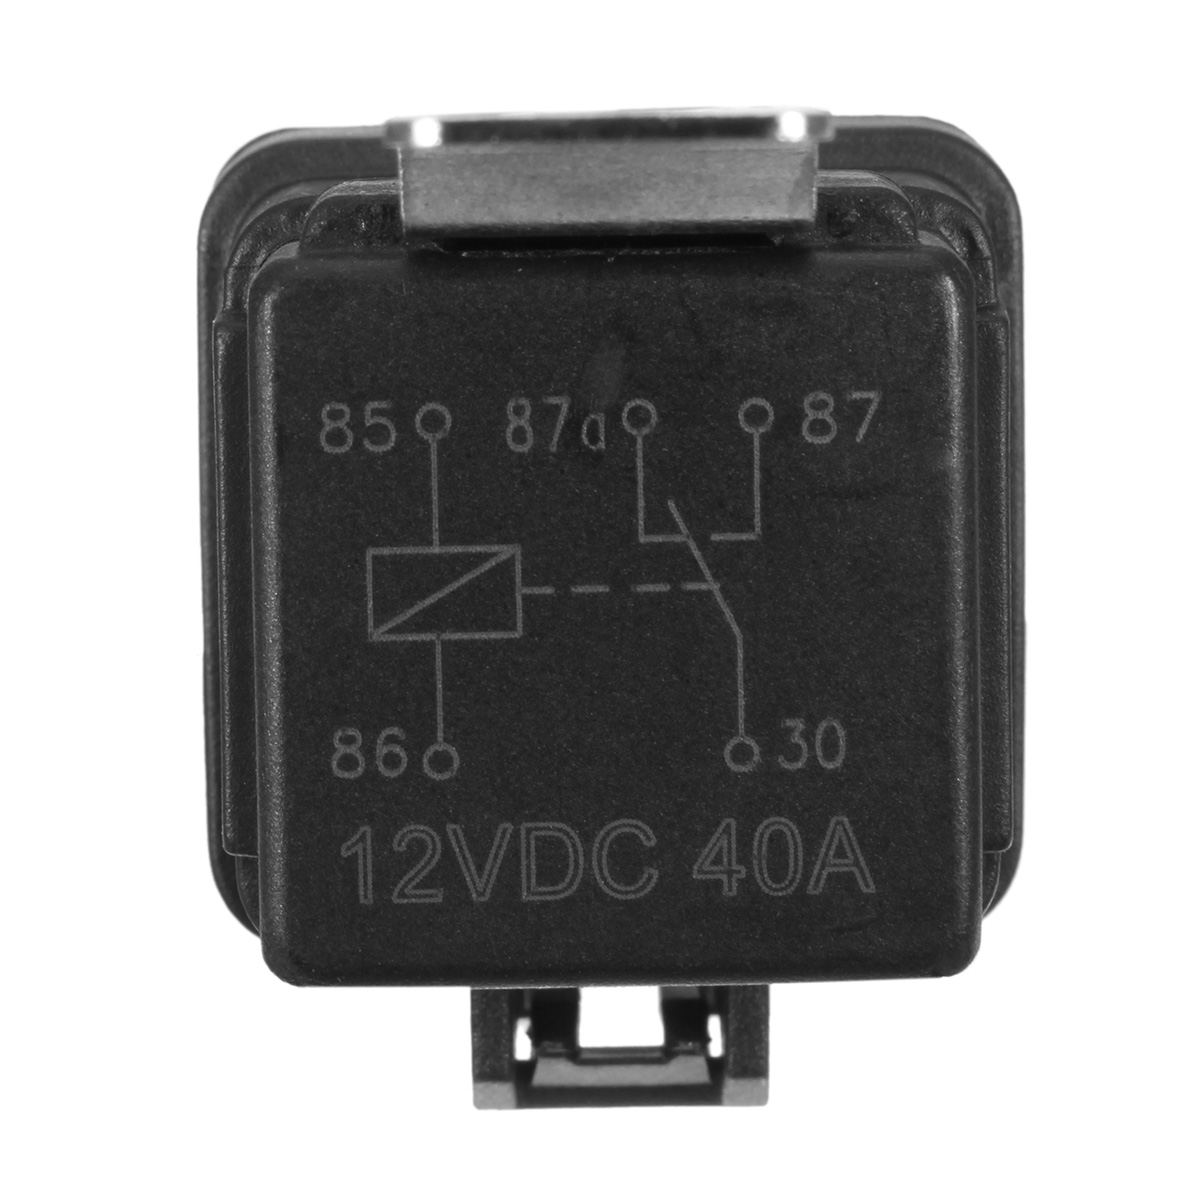 12vdc 30 40a relay wiring diagram 1982 jeep cj5 5 pcs automotive switch harness 12awg wires